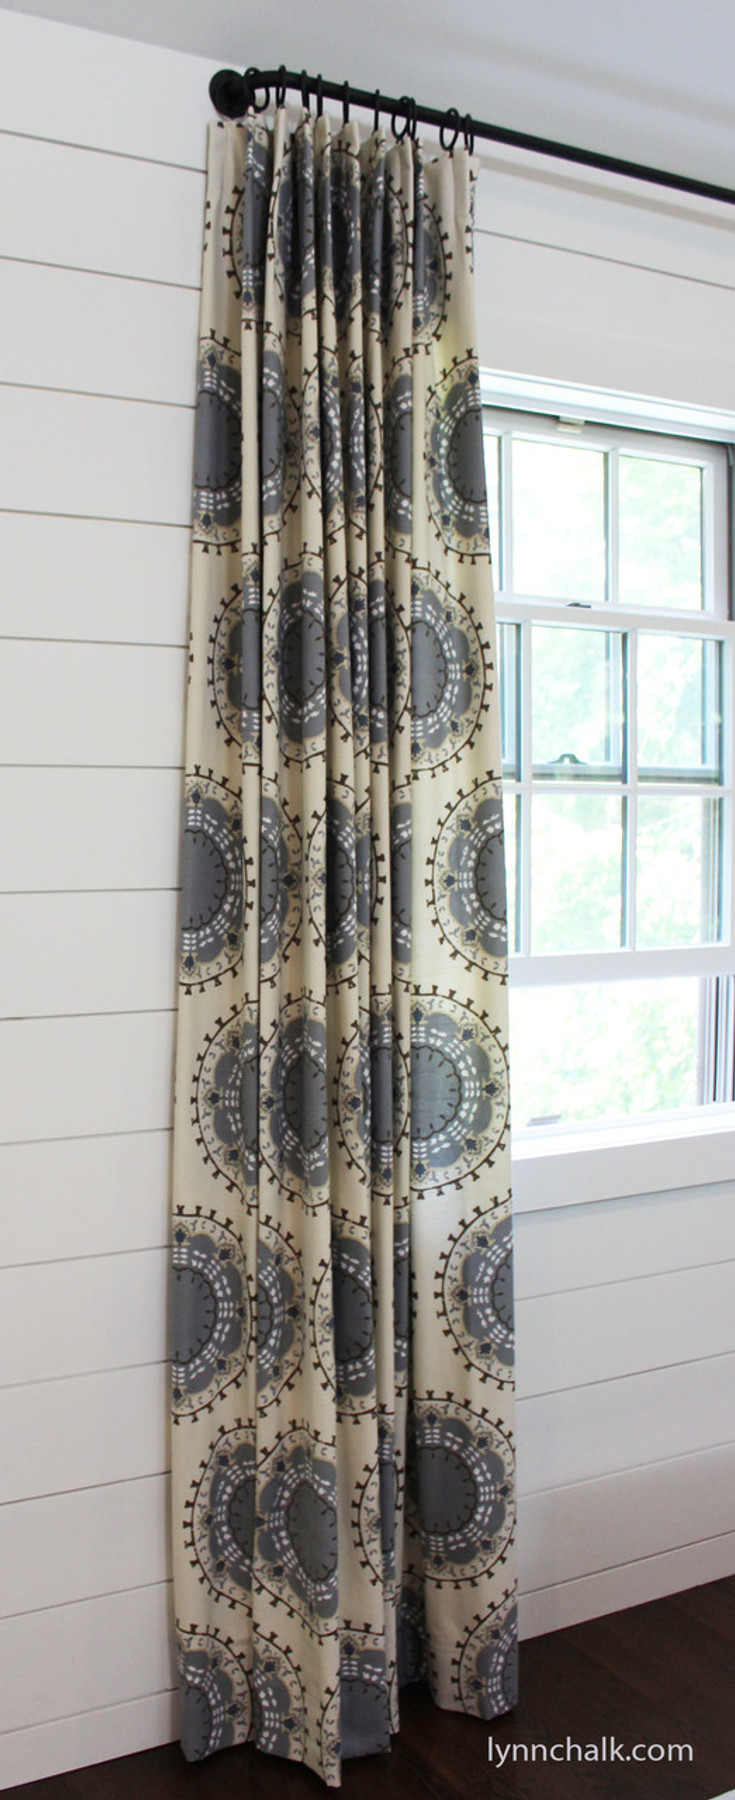 Custom Drapes by Lynn Chalk in Robert Allen Dwell Studio Medallion Band in Mineral